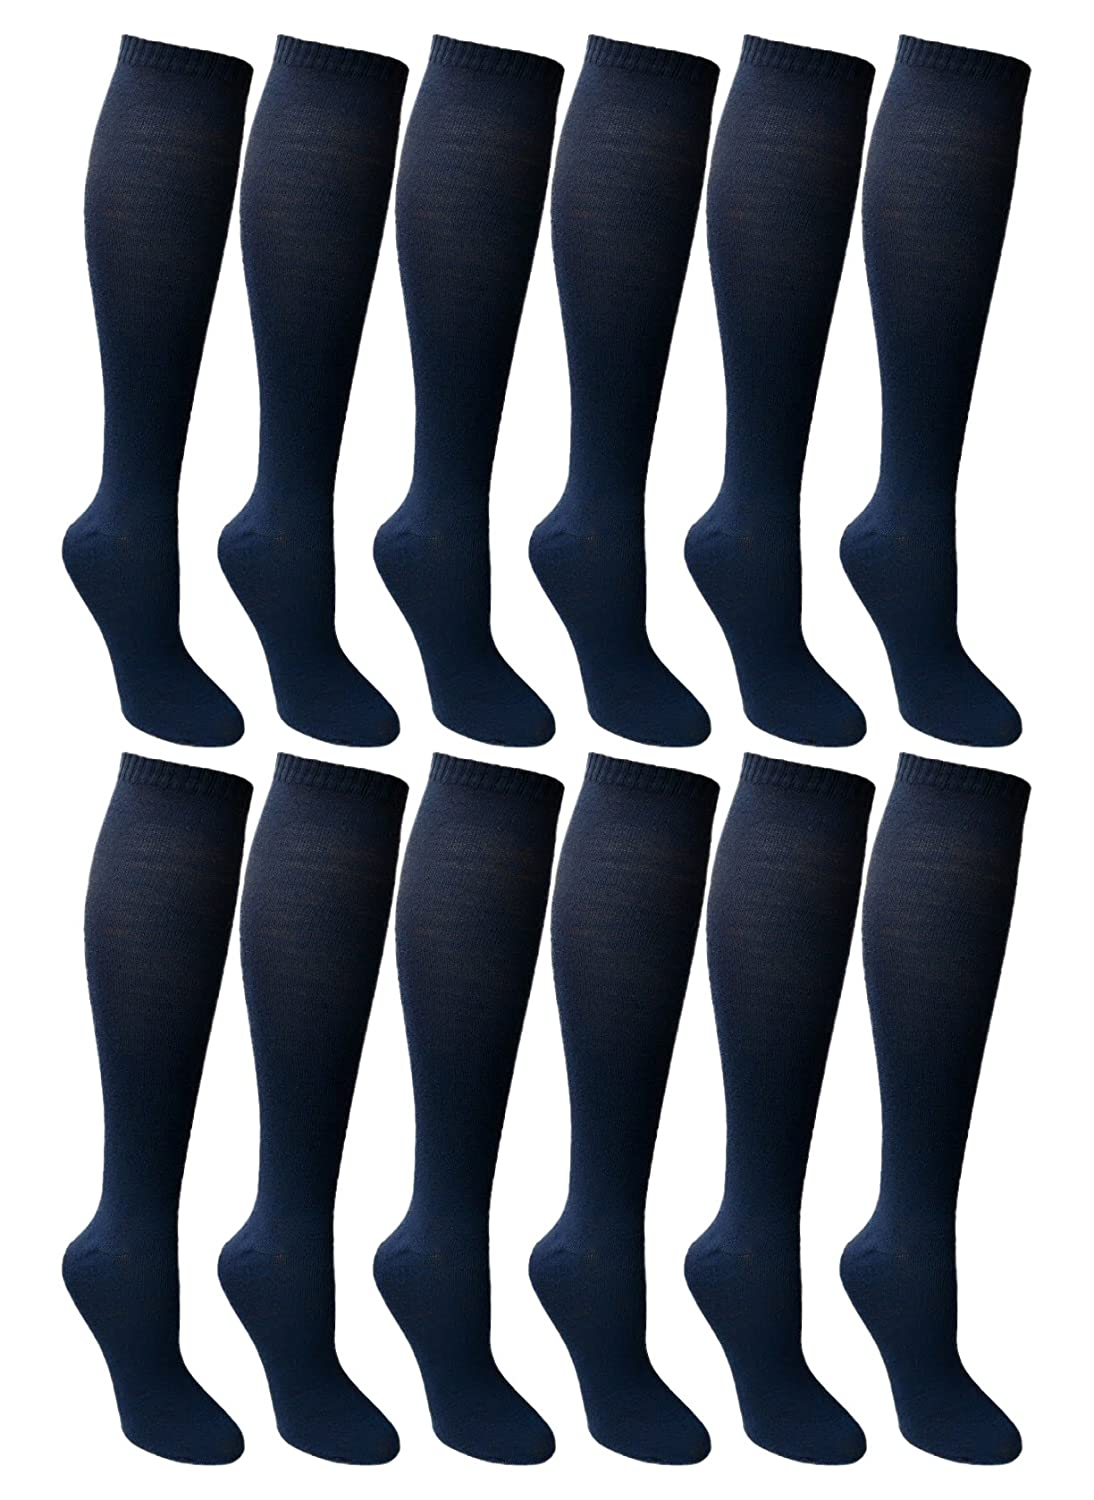 8ba0775d8 GIRLS KNEE HIGH SOCKS  Choose from a variety of solid colored knee high  socks for girls. For casual wear